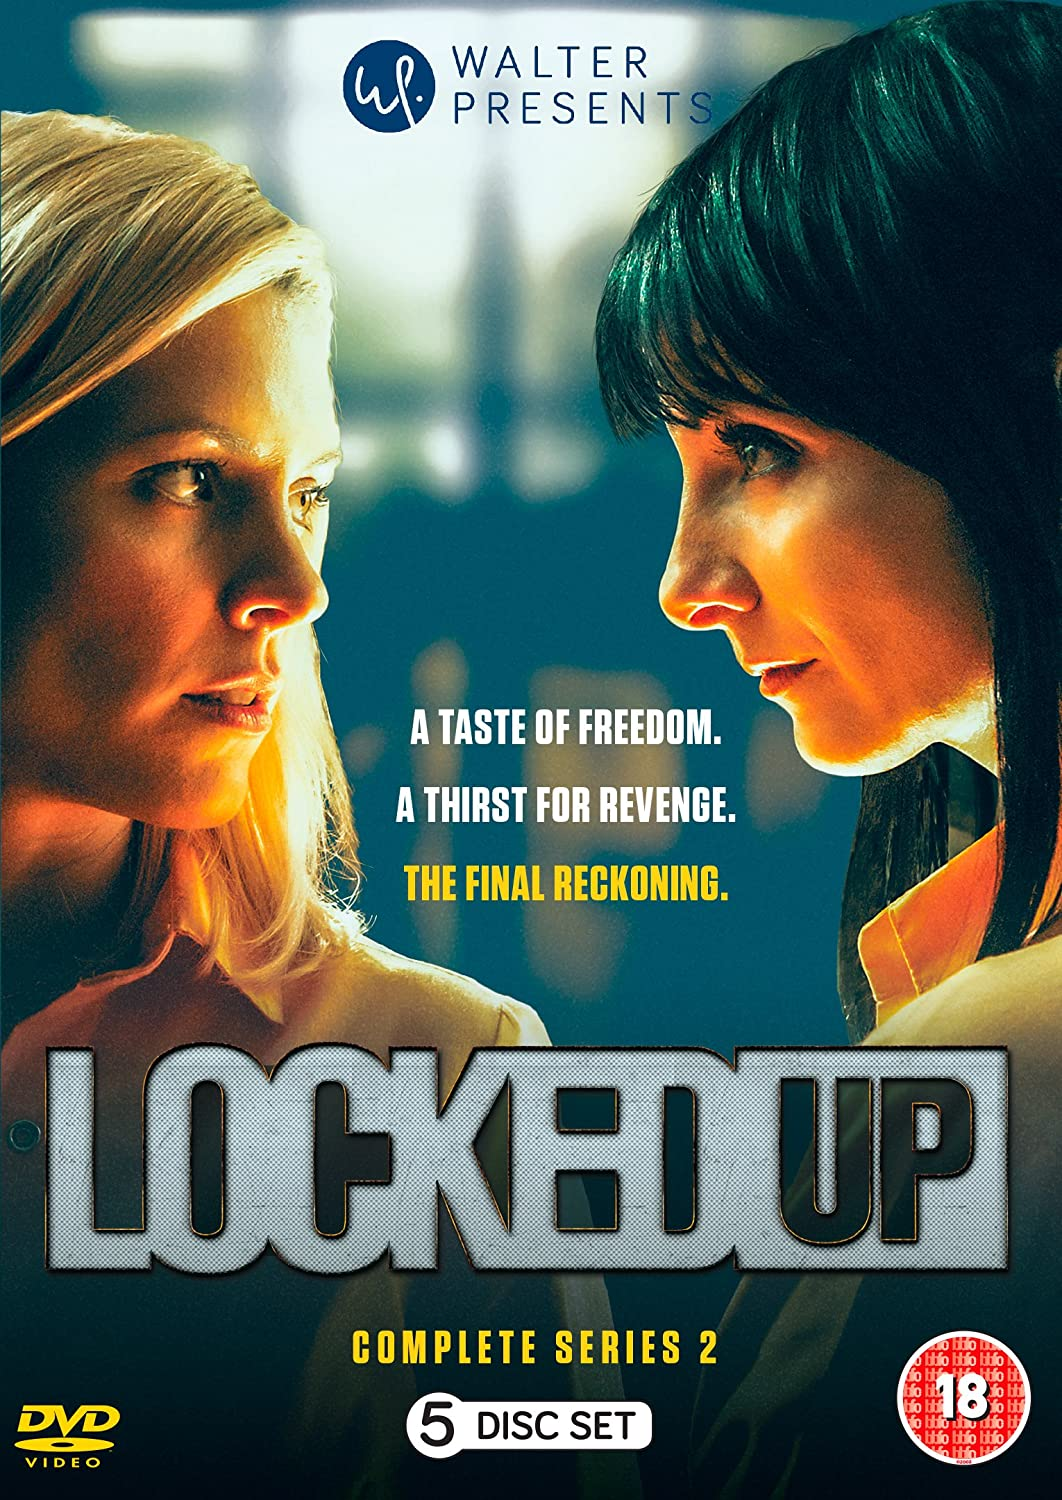 Locked Up: Series 2